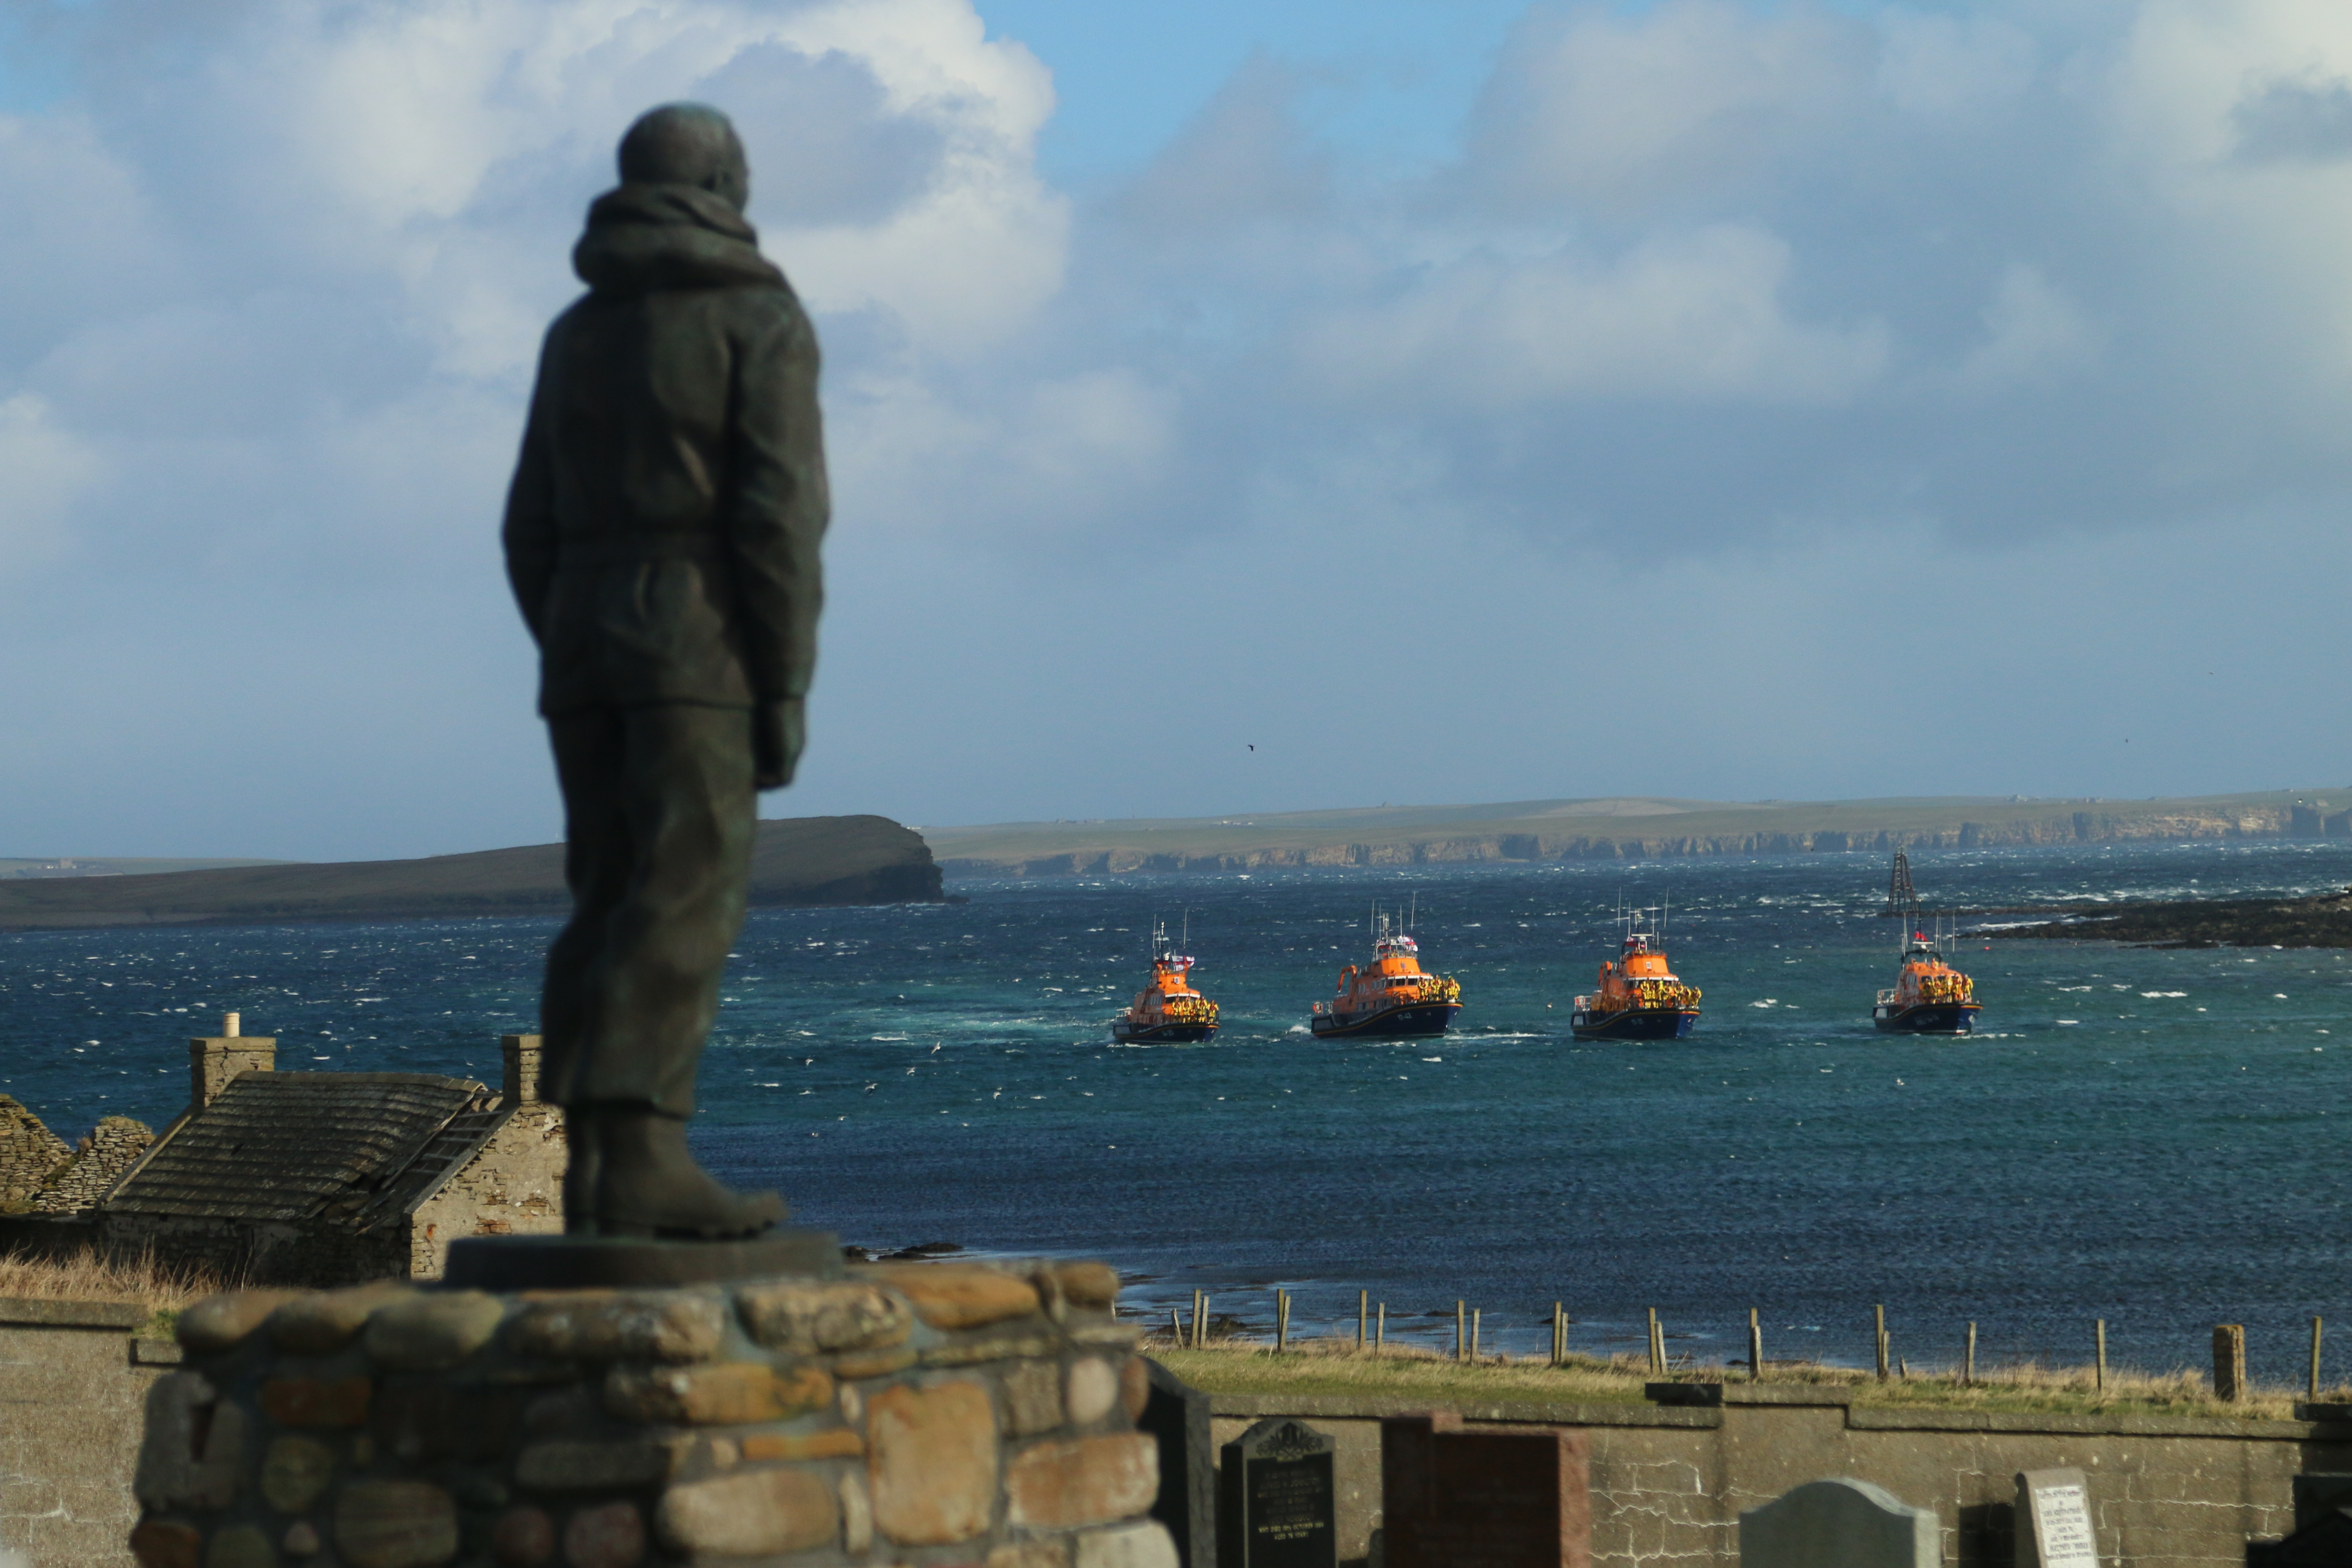 Lifeboats from Longhope, Stromness, Wick and Thurso pay their respects at the memorial to the lost crew of T.G.B